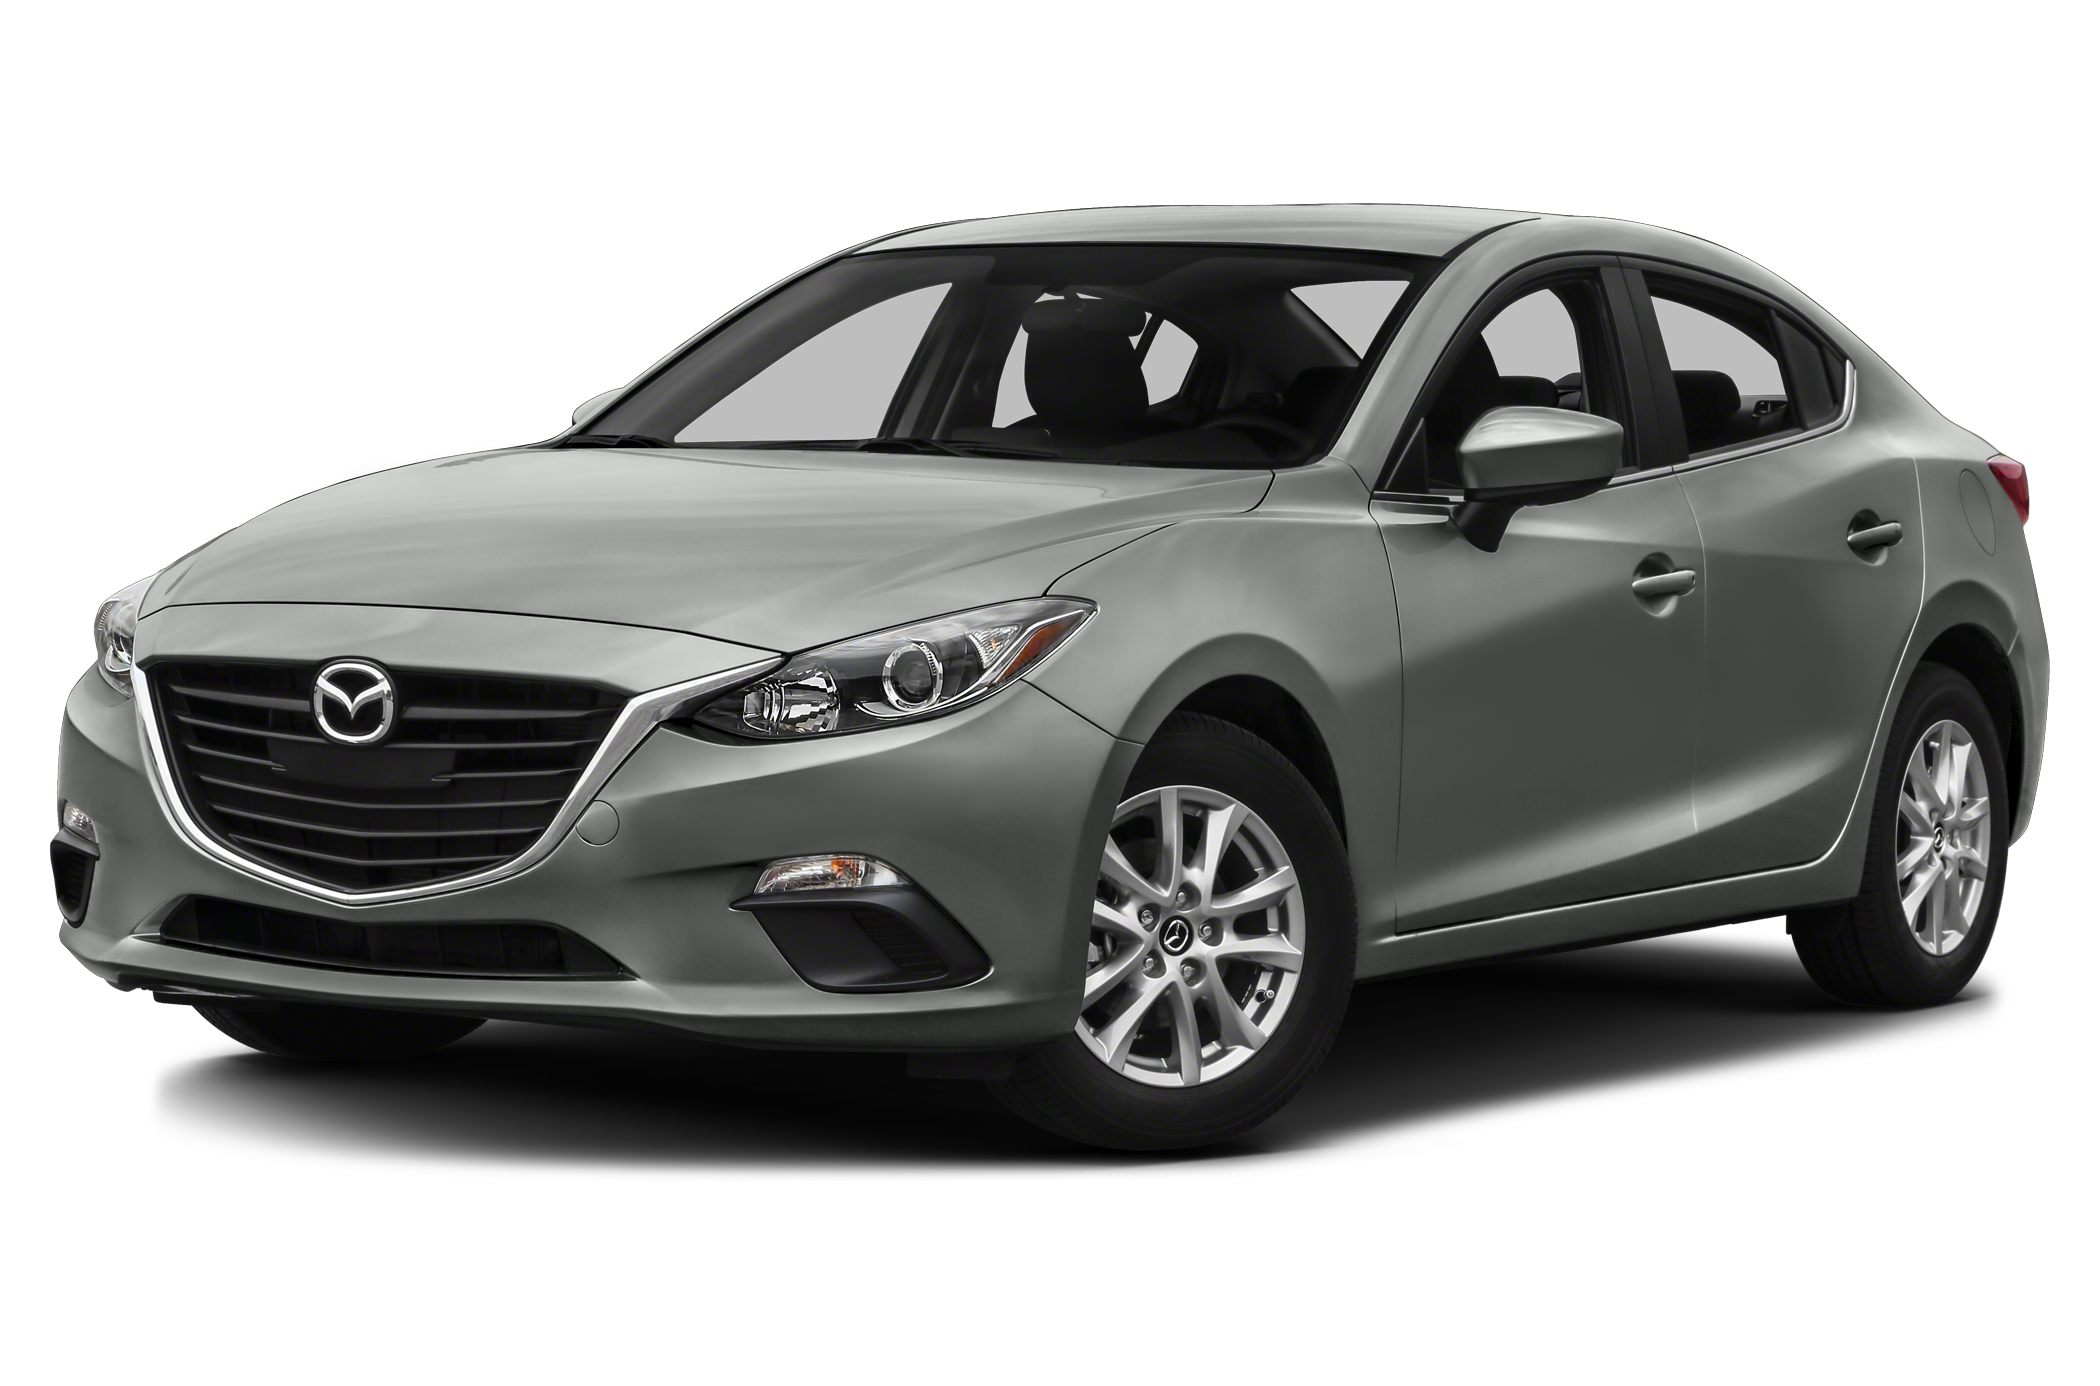 2014 Mazda Mazda3 I Sport Sedan for sale in Easley for $18,225 with 10 miles